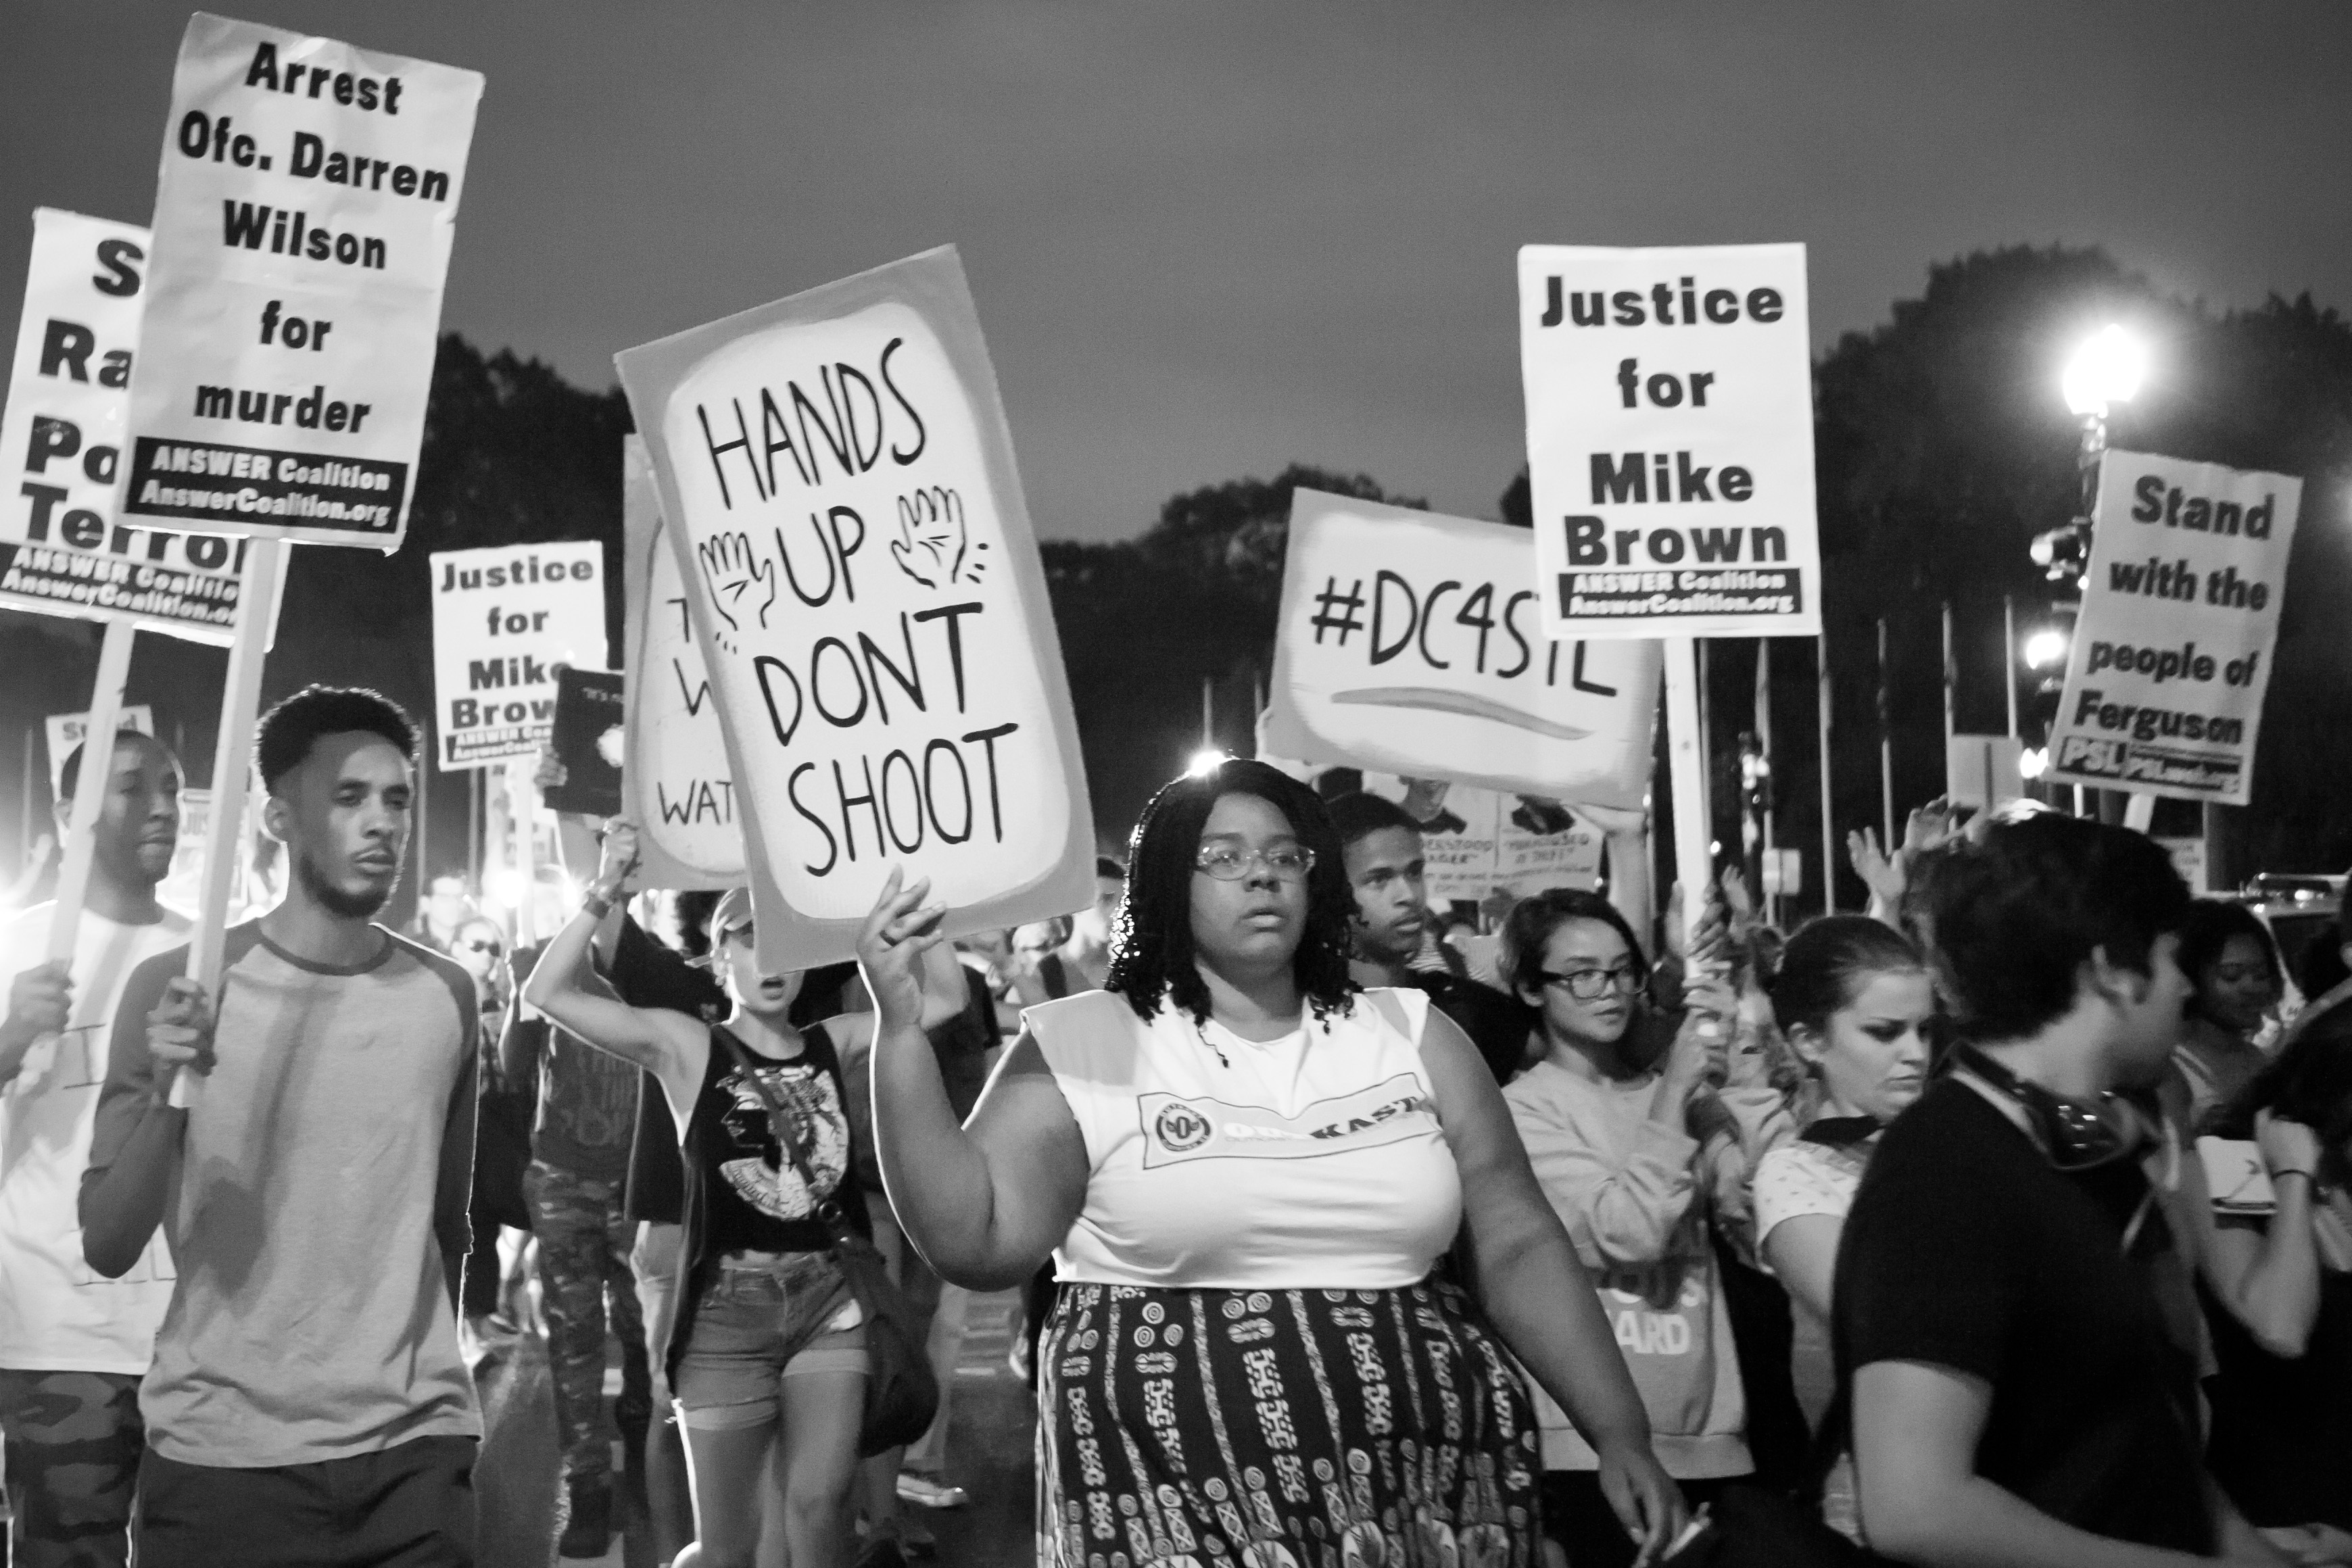 Hands Up! Don't Shoot!' | Sojourners